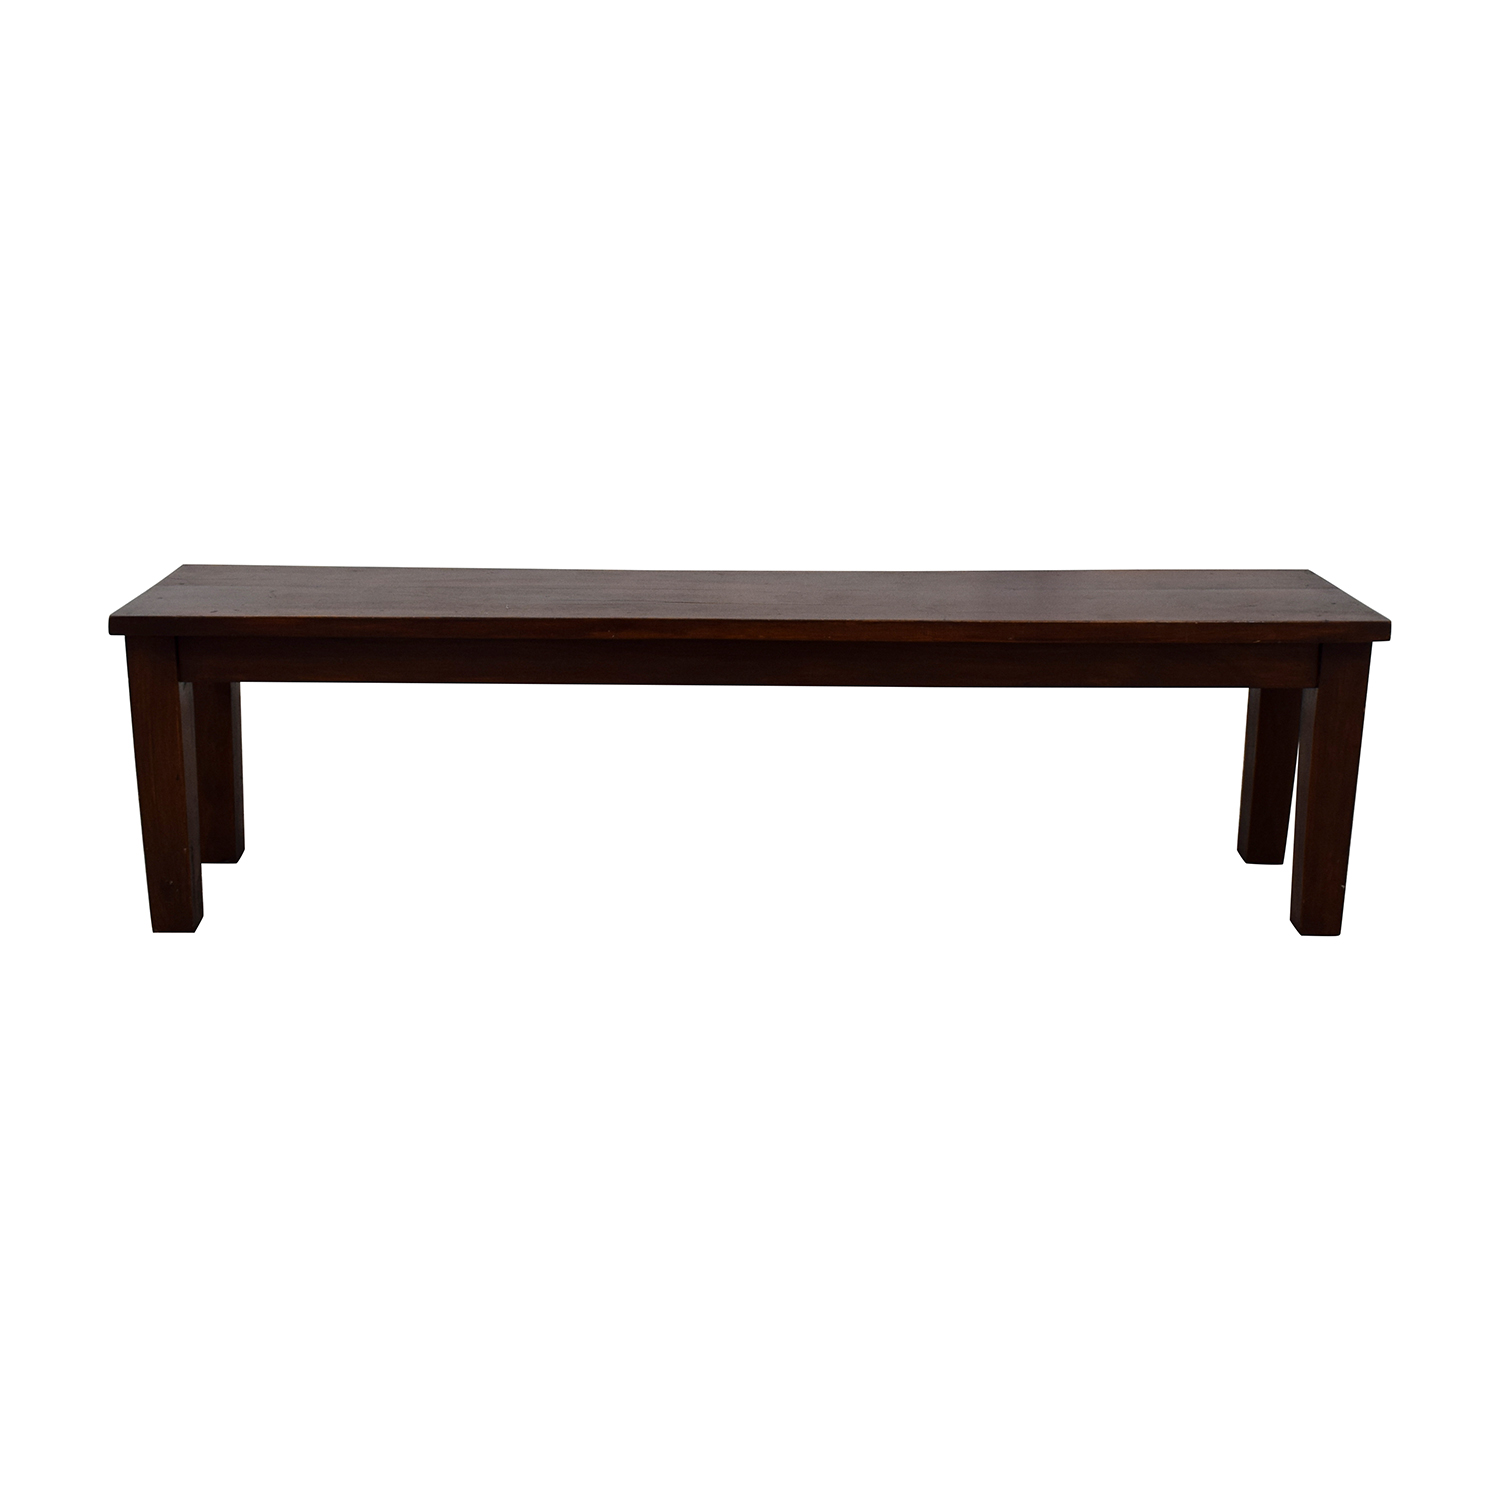 Crate & Barrel Crate & Barrel Entry Bench price